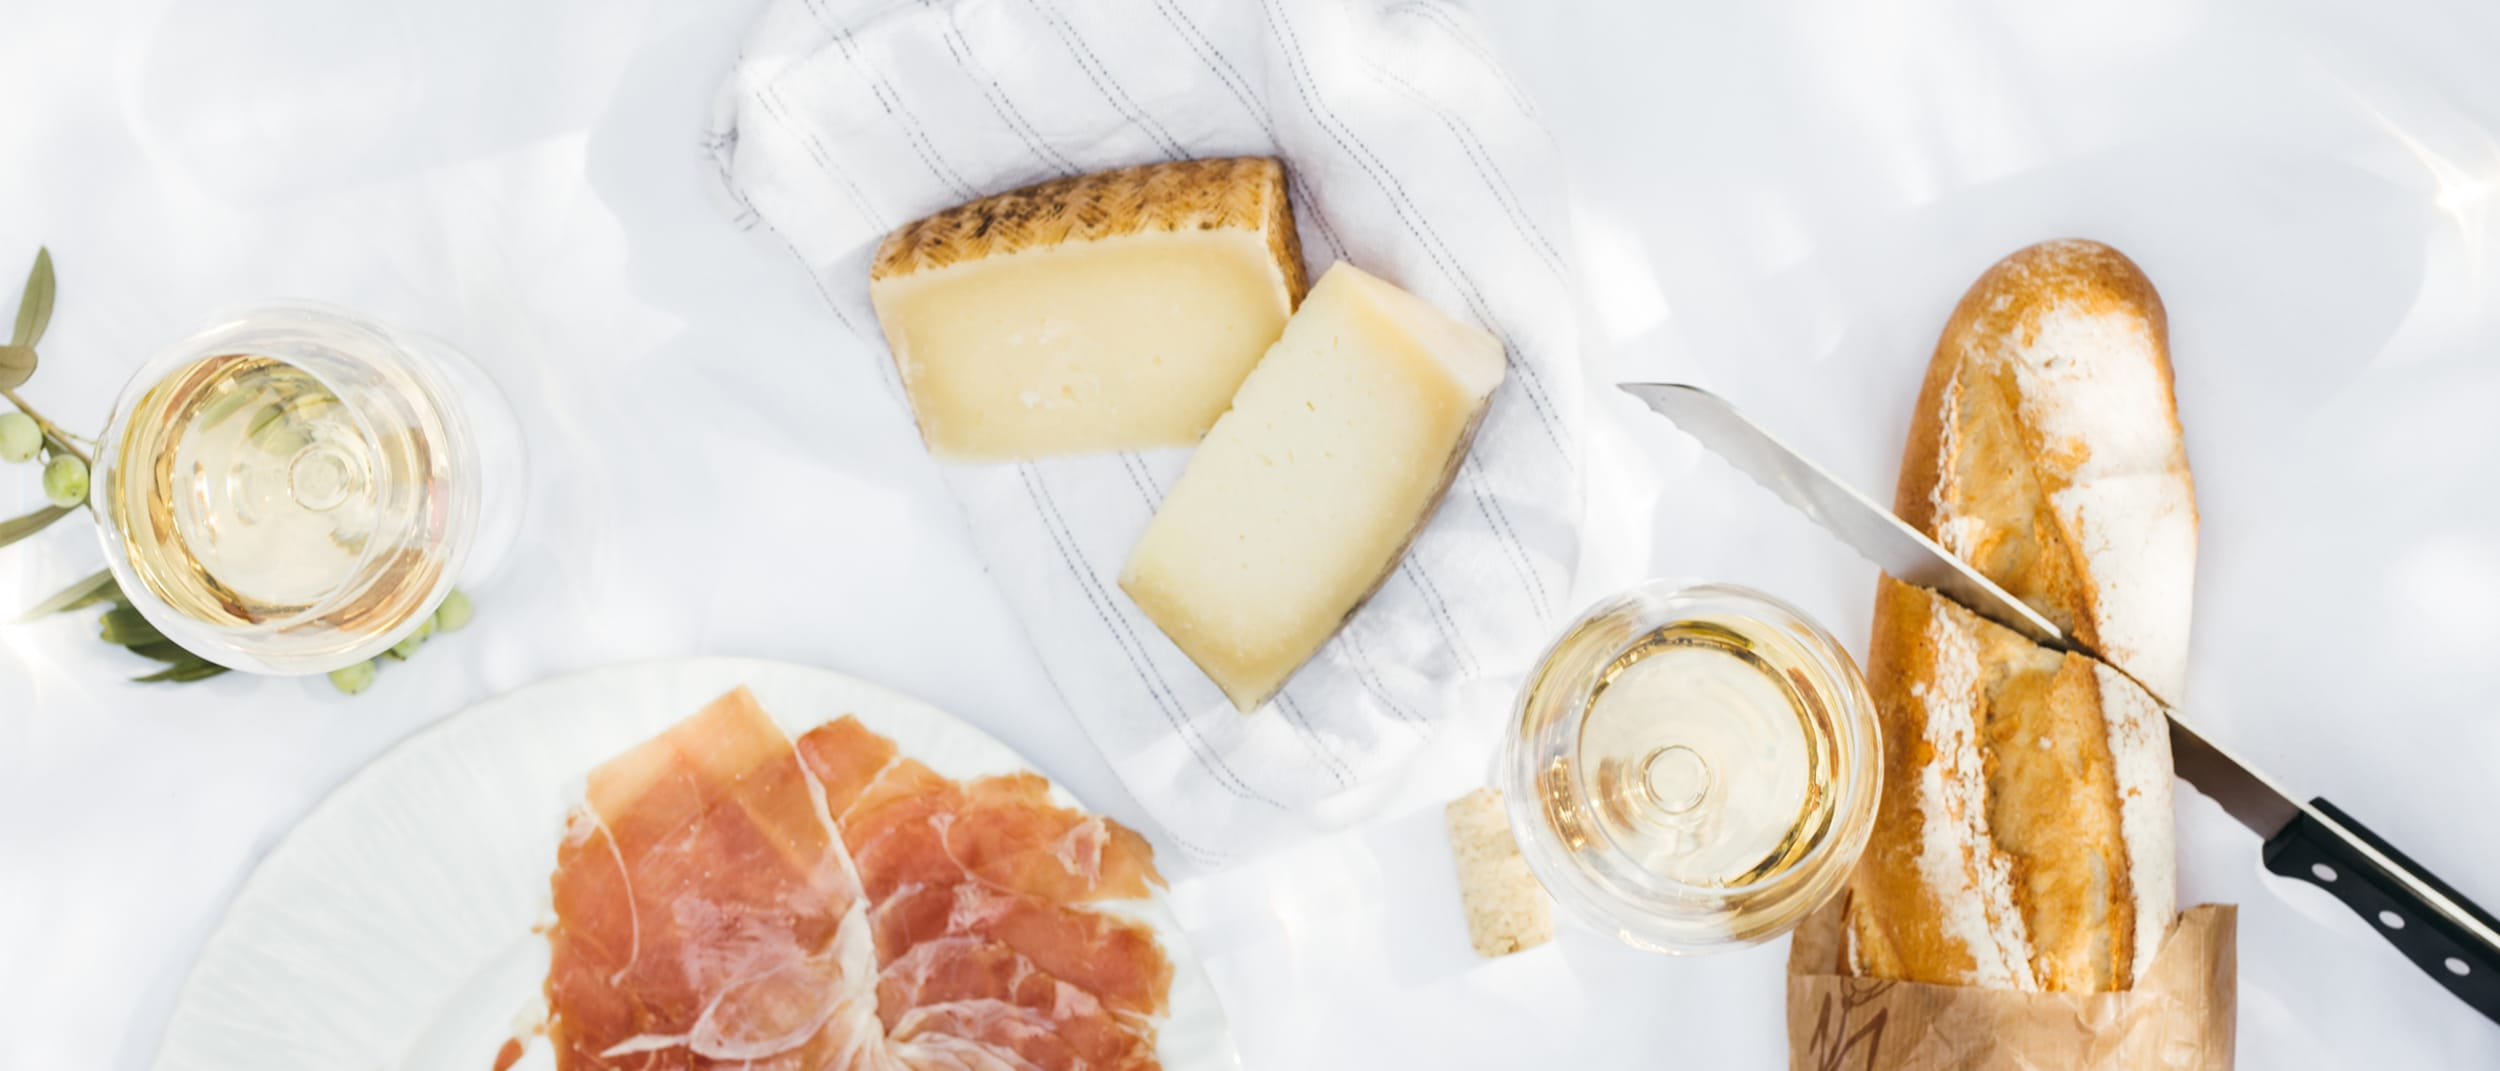 Say cheese: your cheese board favourites, explained